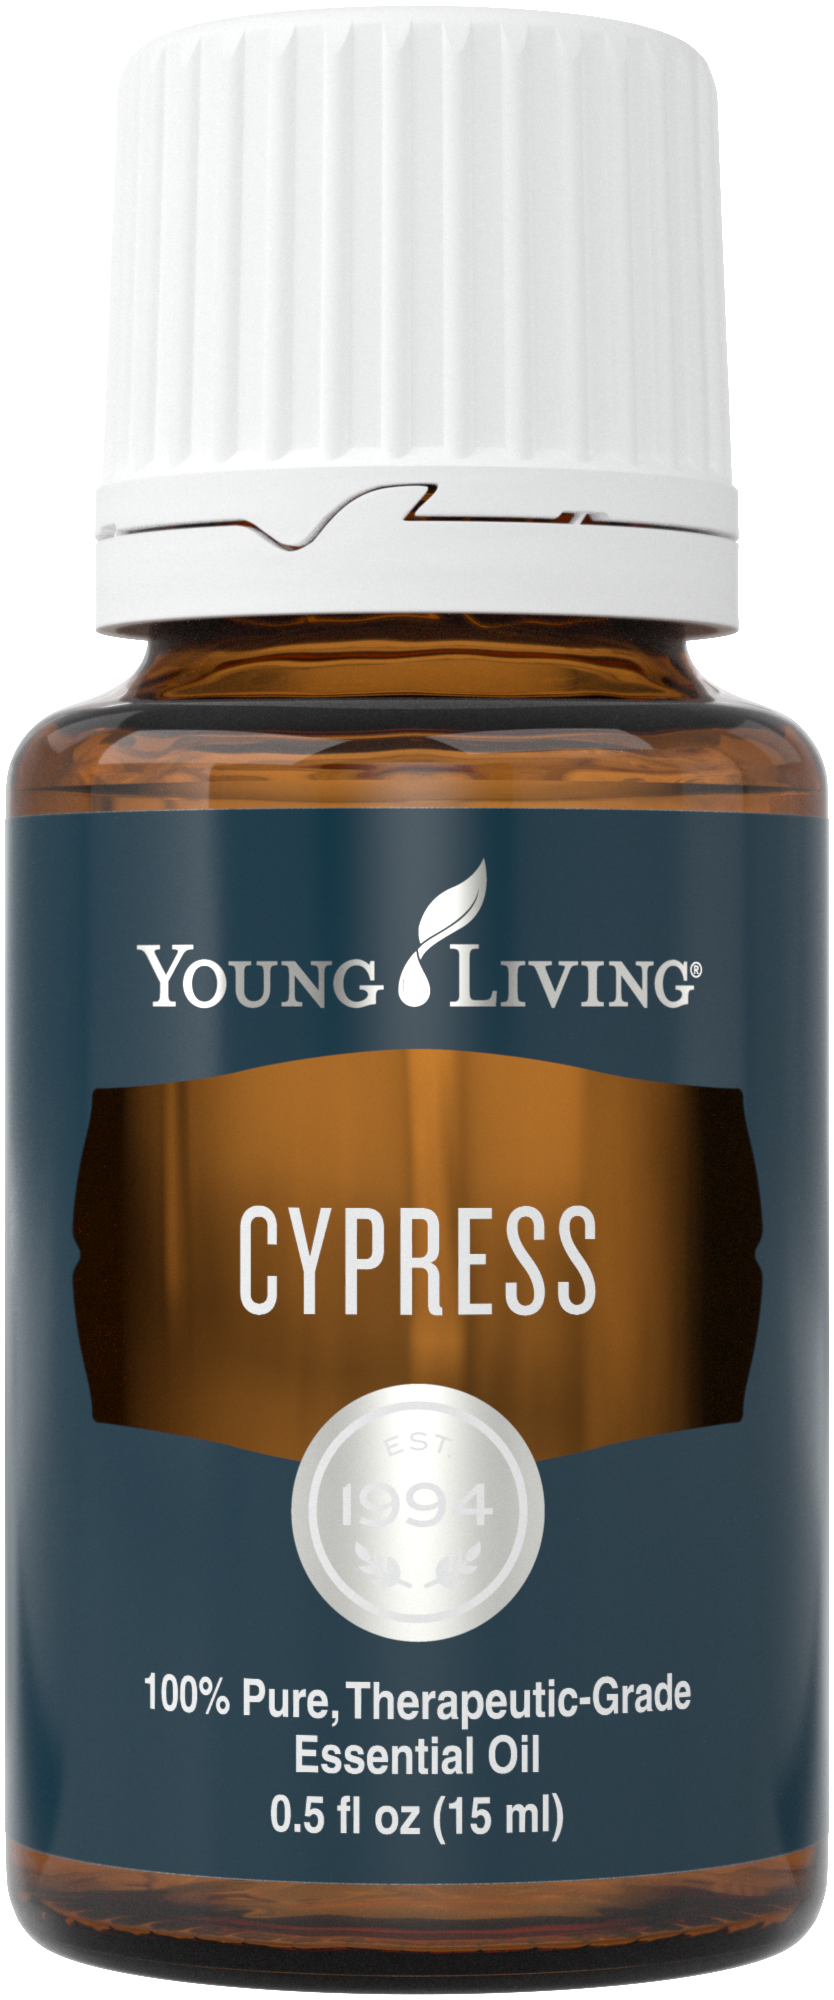 Cypress Essential Oil by Young Living